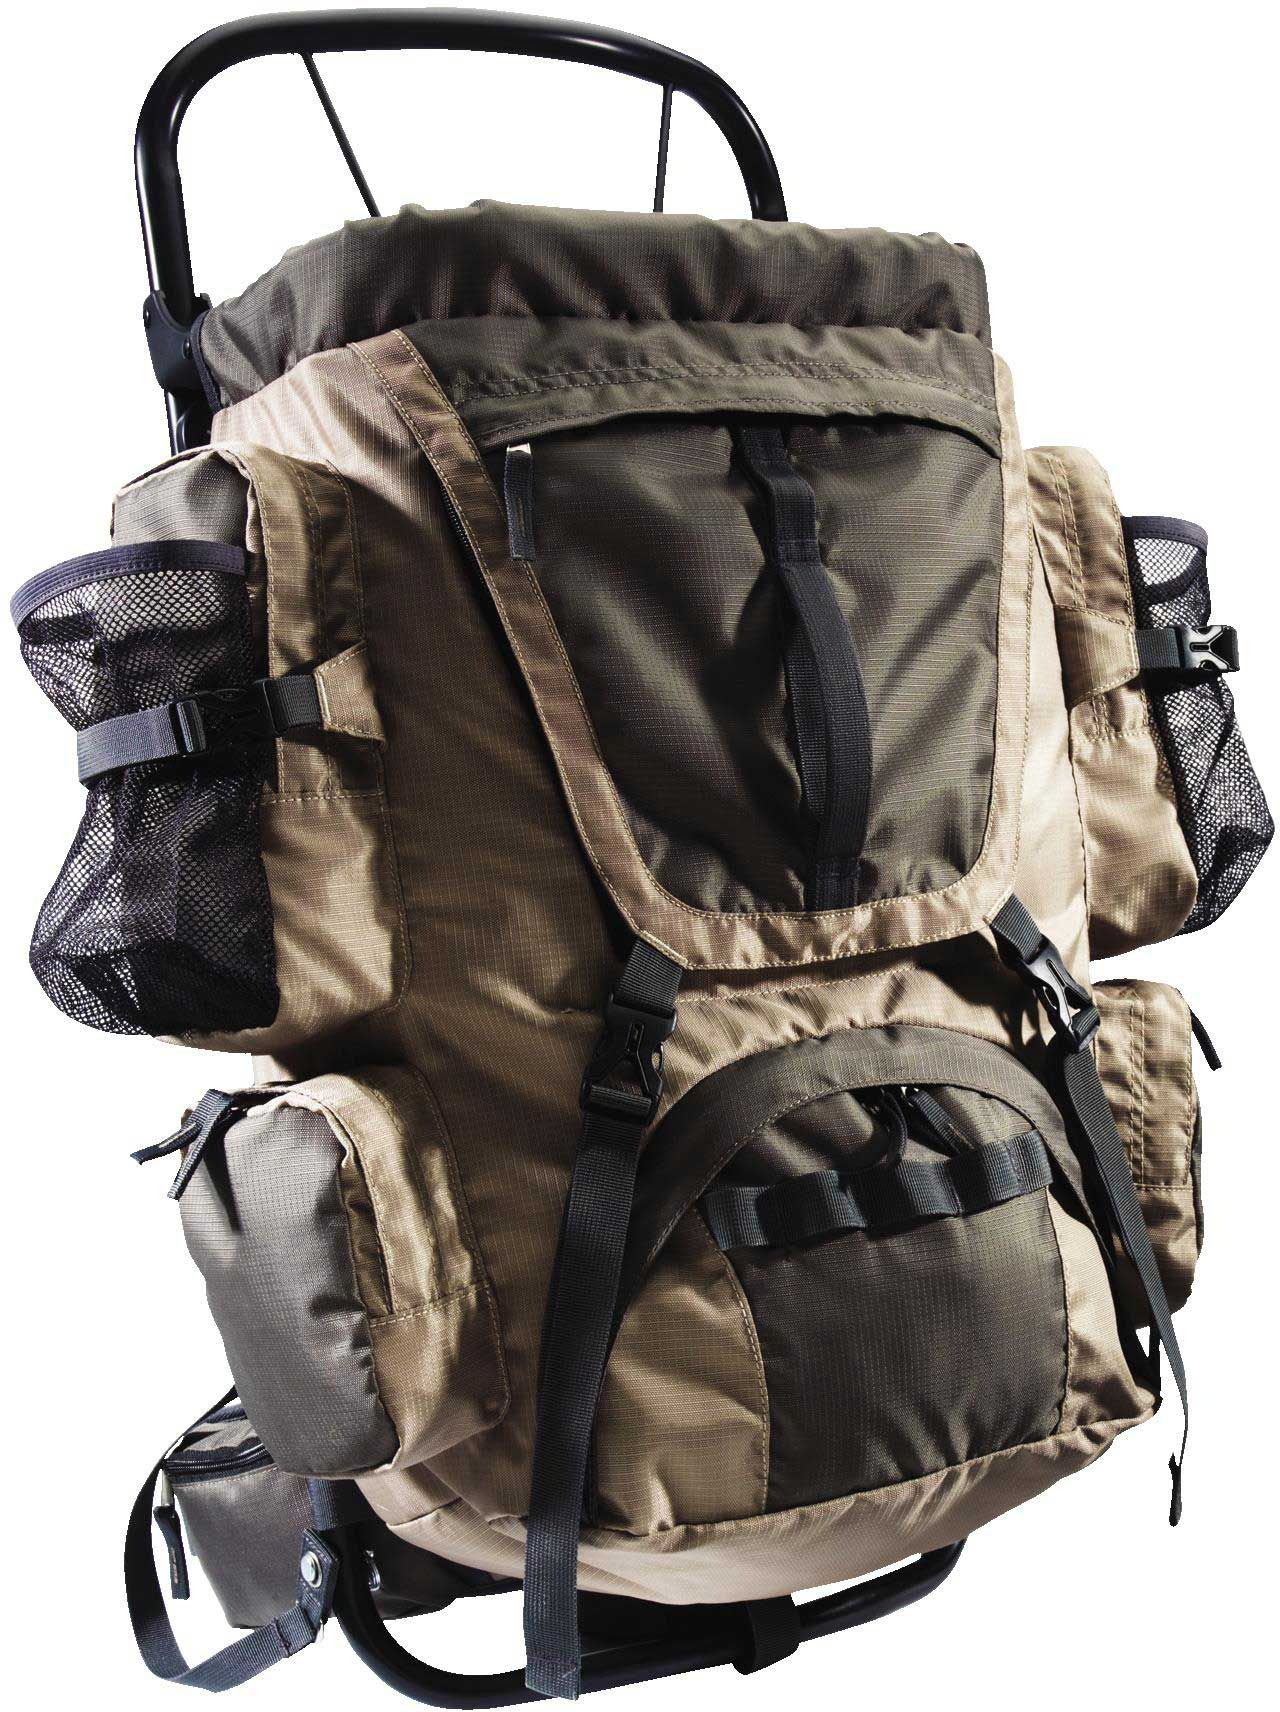 Field & Stream 40L External Frame Pack | Field & Stream